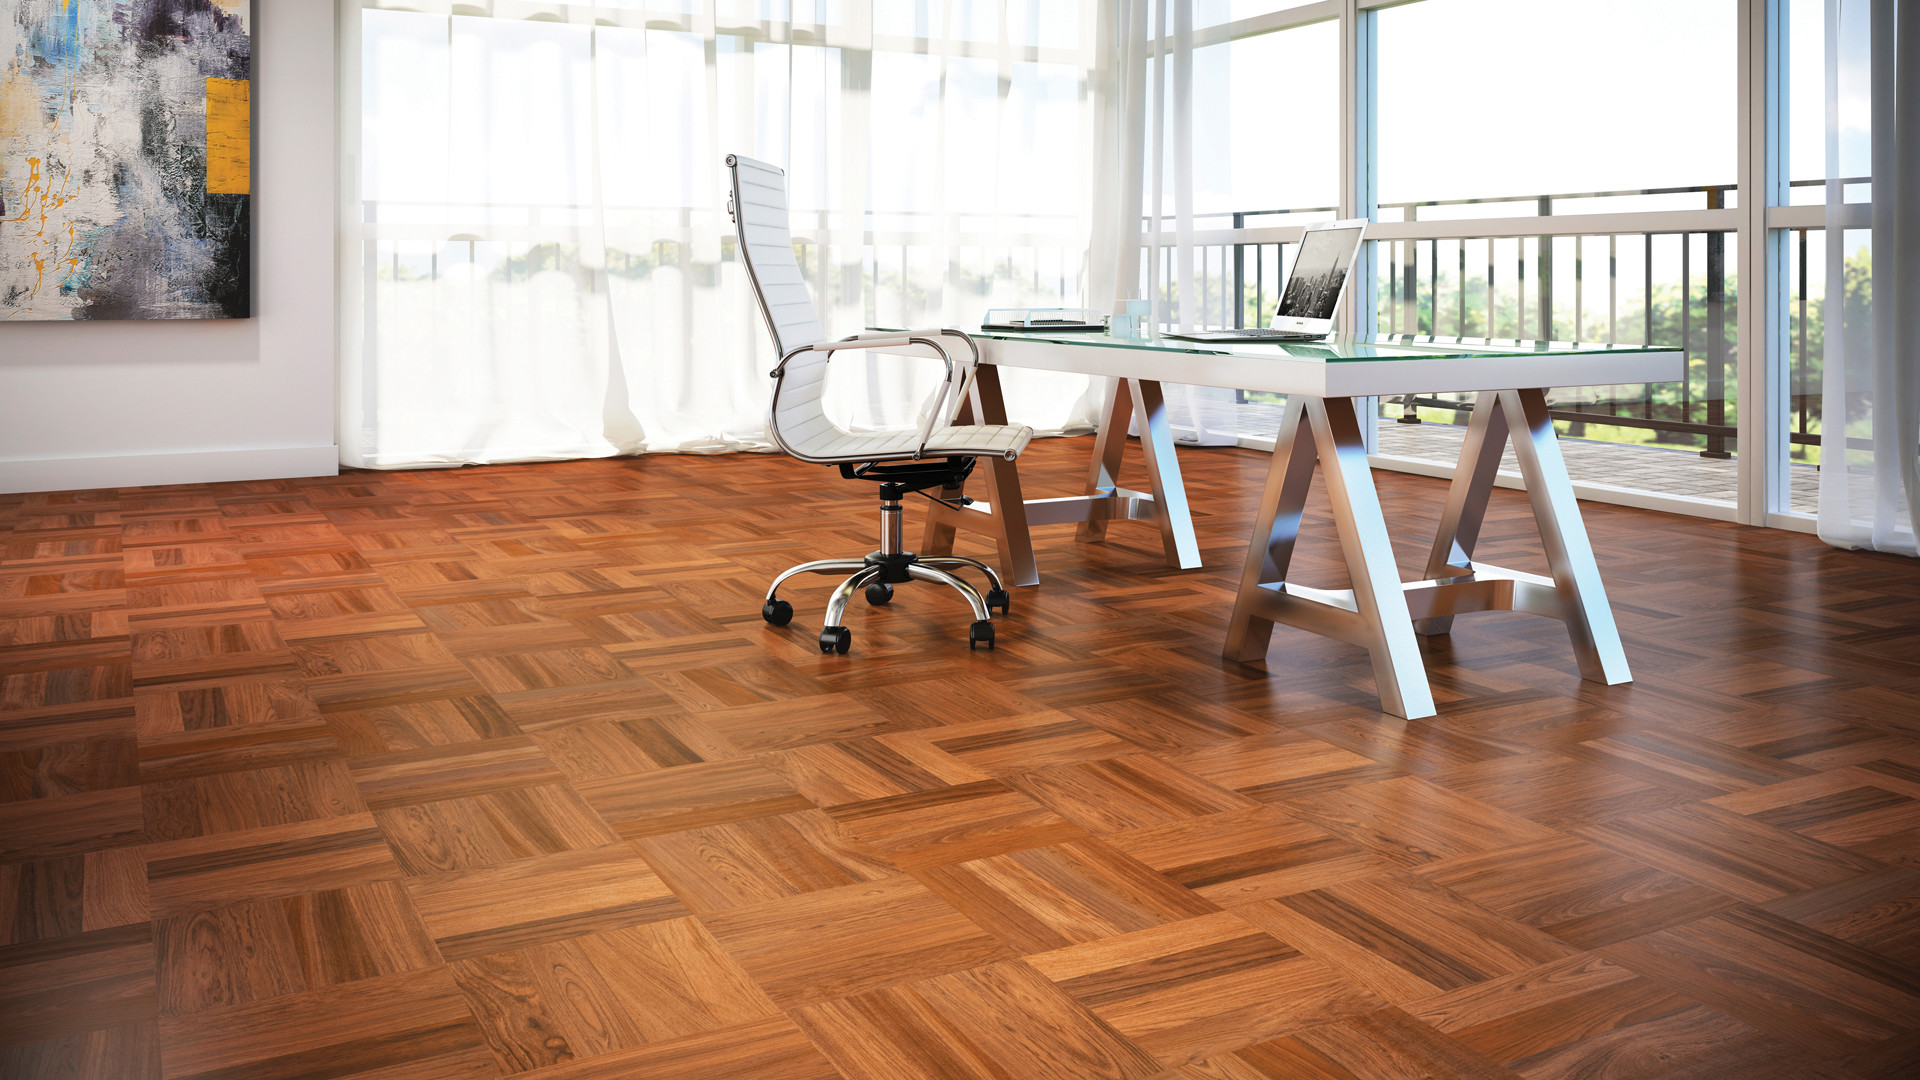 most popular hardwood floor colors 2015 of 4 latest hardwood flooring trends of 2018 lauzon flooring inside hardwood floors made out of our domestic species hard maple red oak and yellow birch from our ambiance collection are now offered in wider and longer